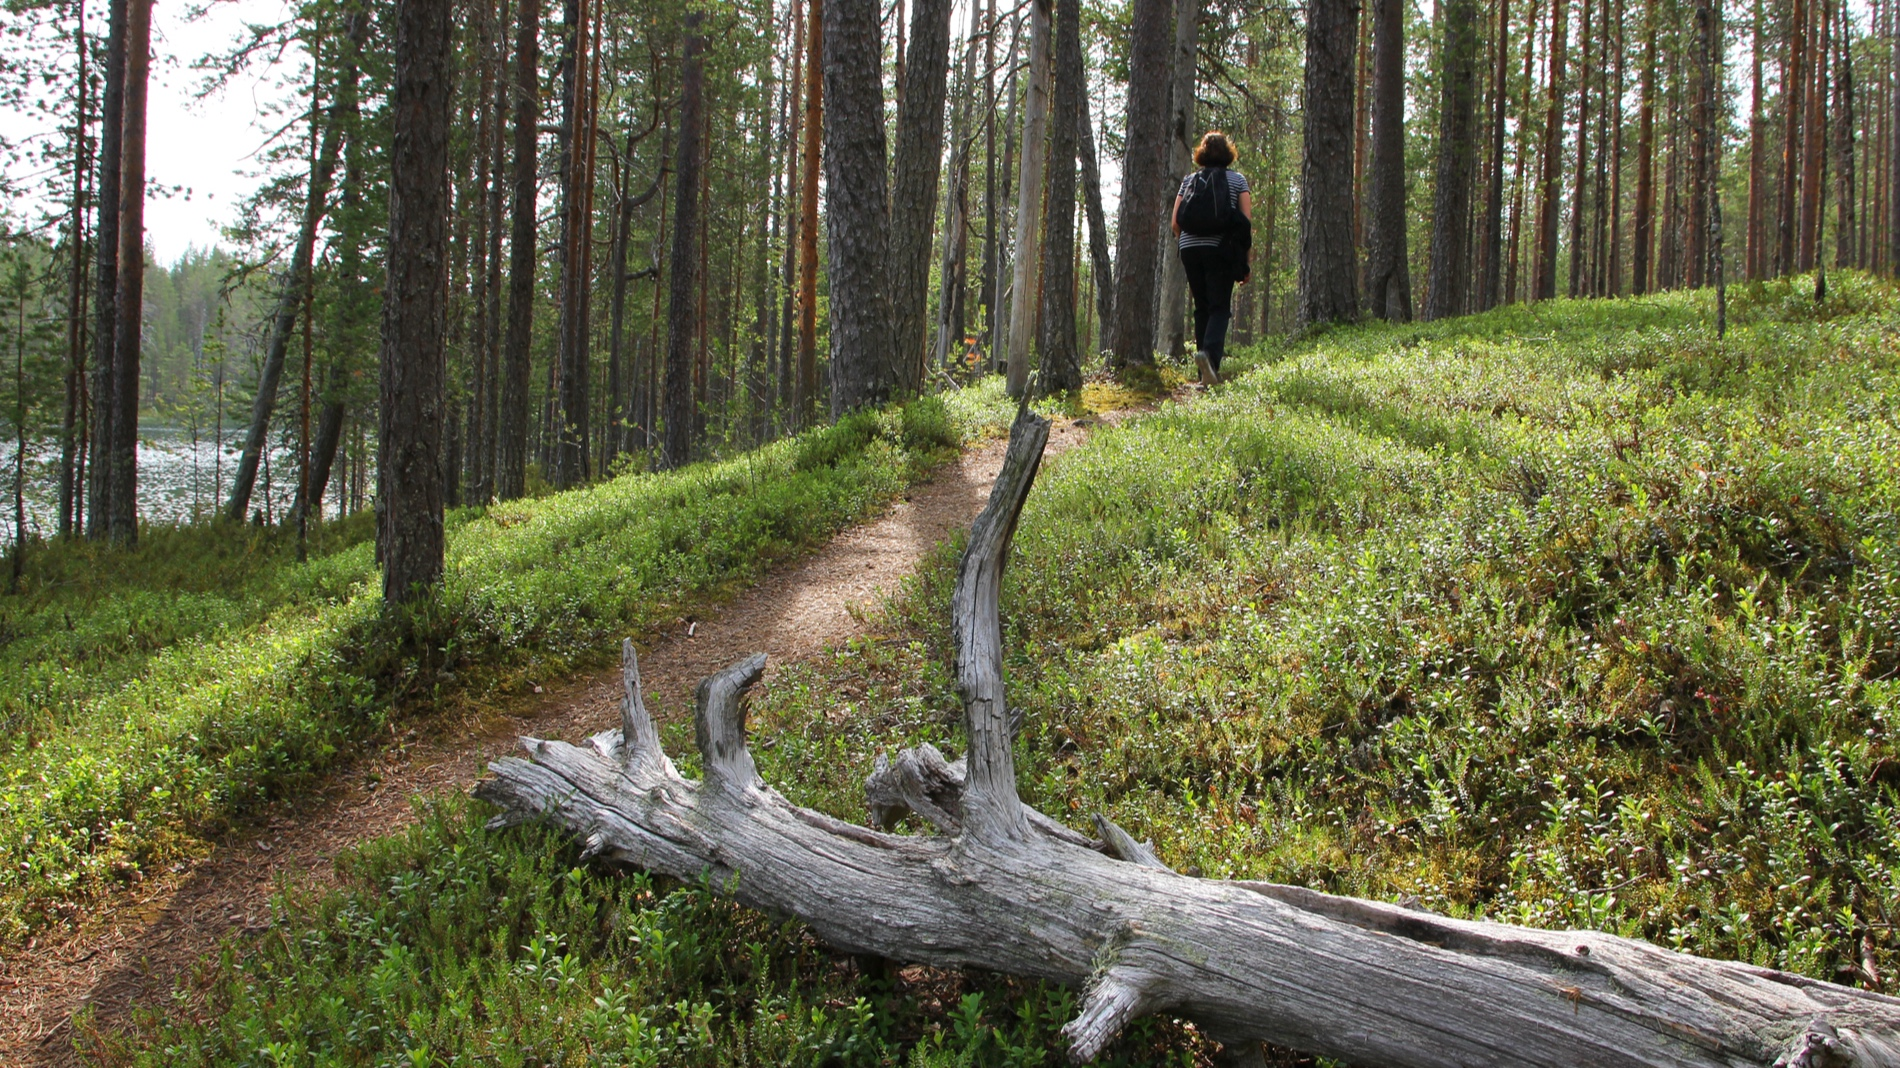 female-hiker-on-forest-trail-P55HR39.jpg